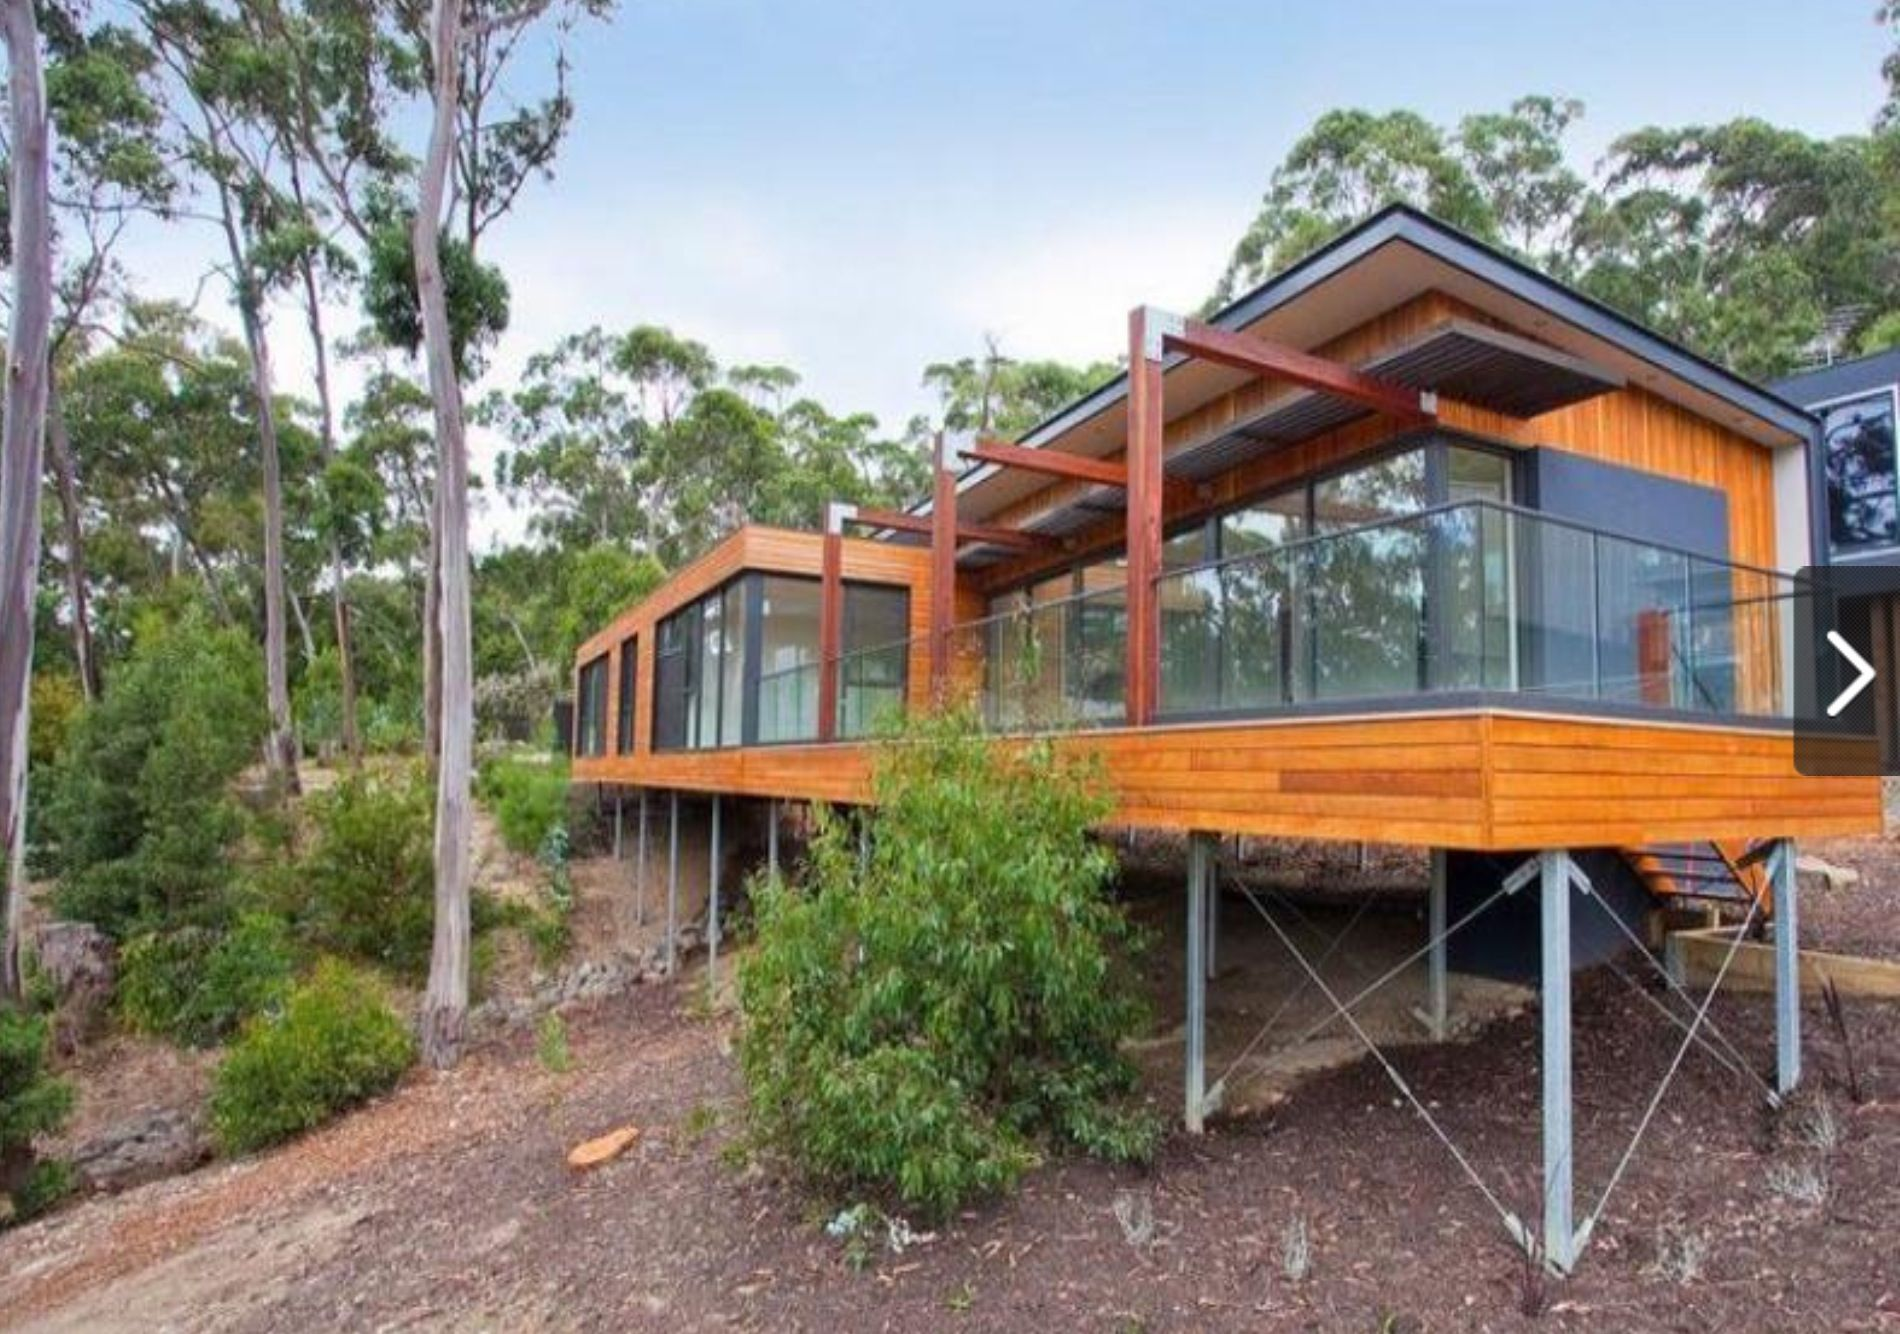 House on slope australia house on slope pinterest for Cost of building on a steep slope